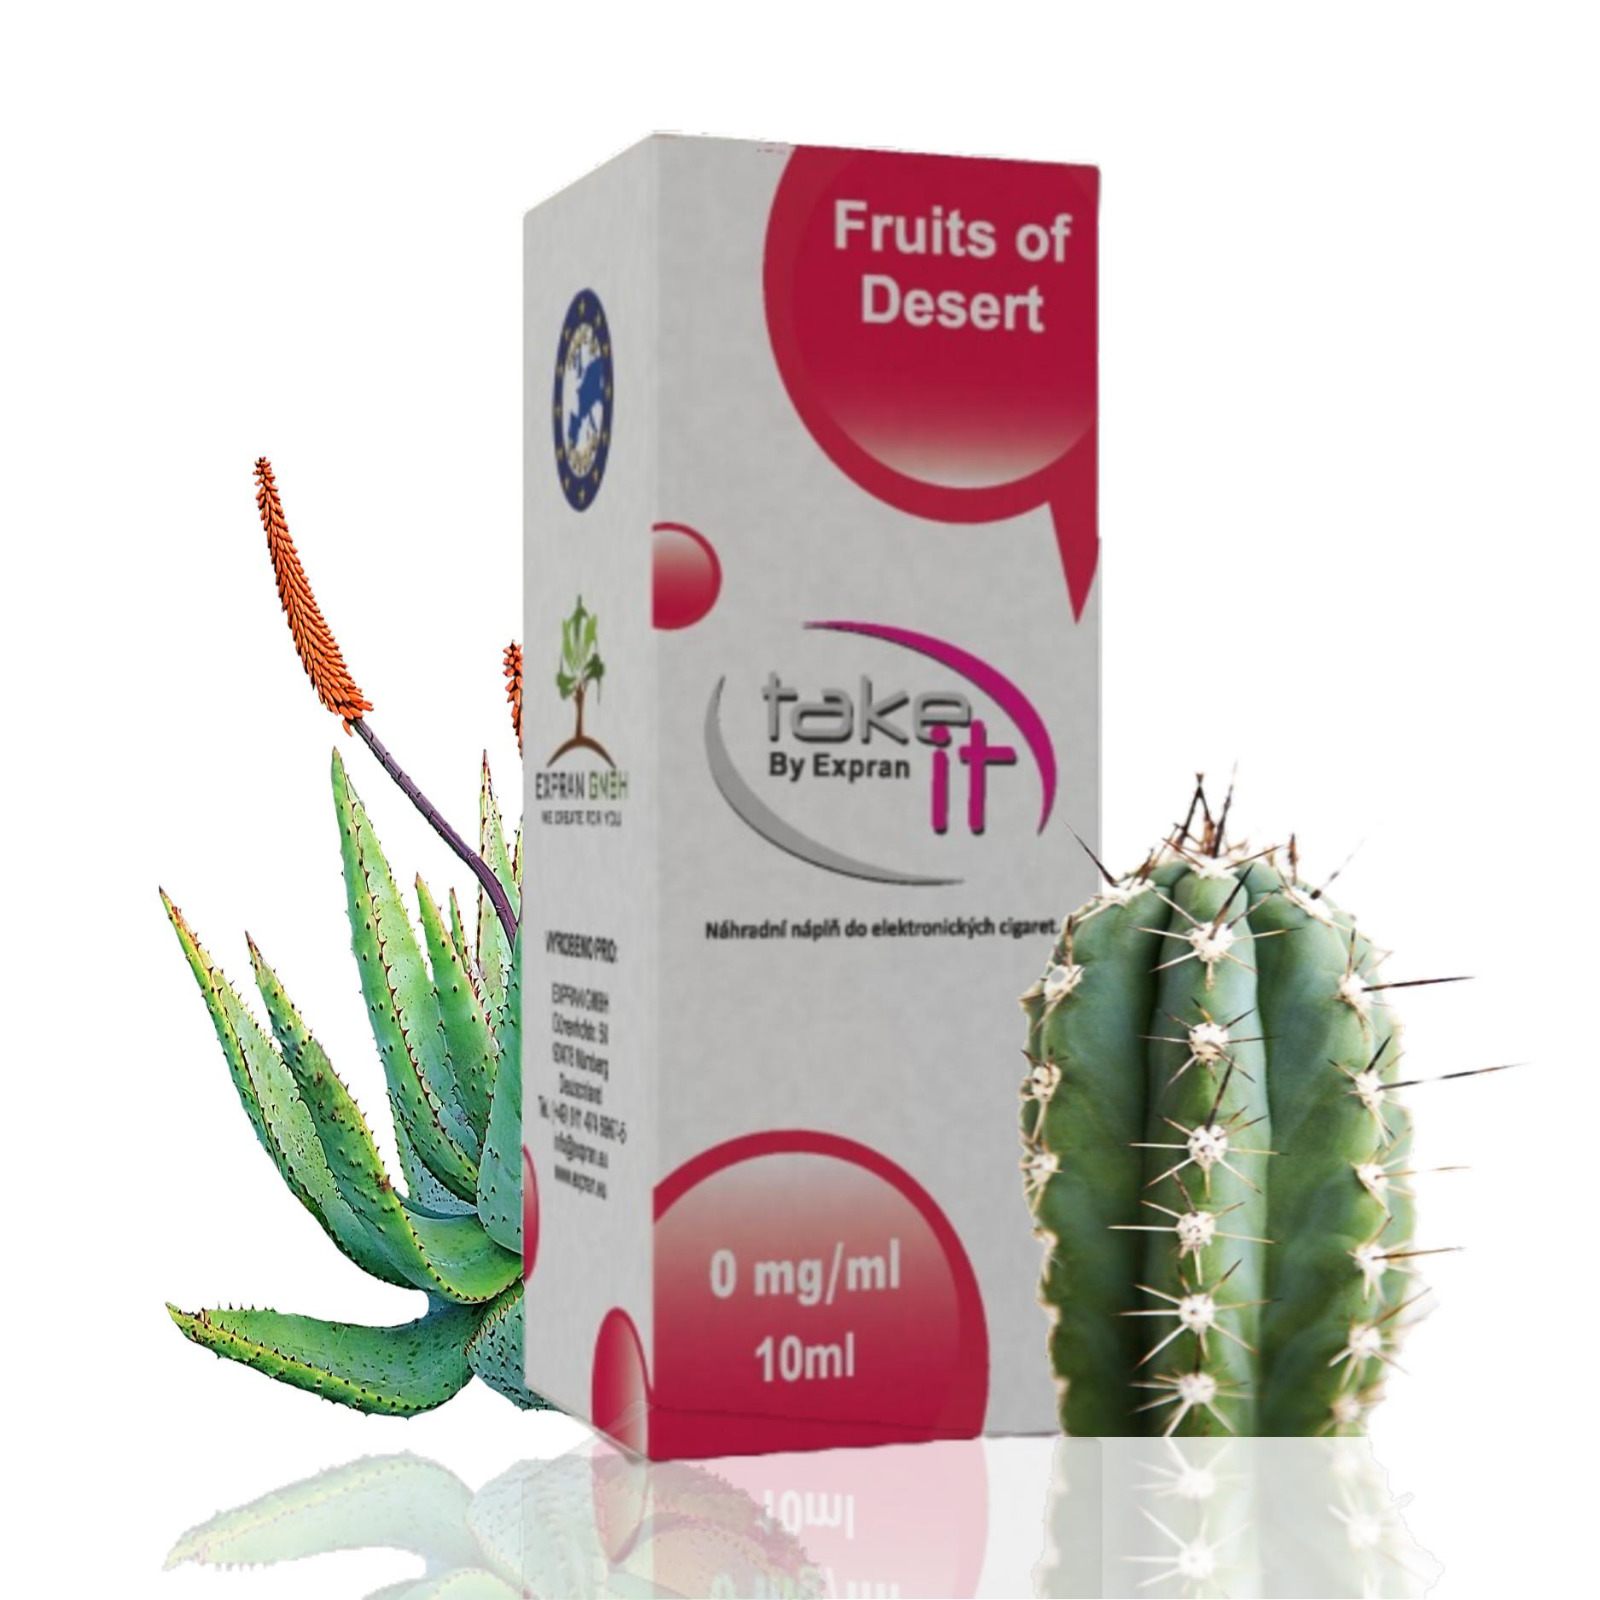 10 ml Take It - Fruits of Desert 3 mg/ml